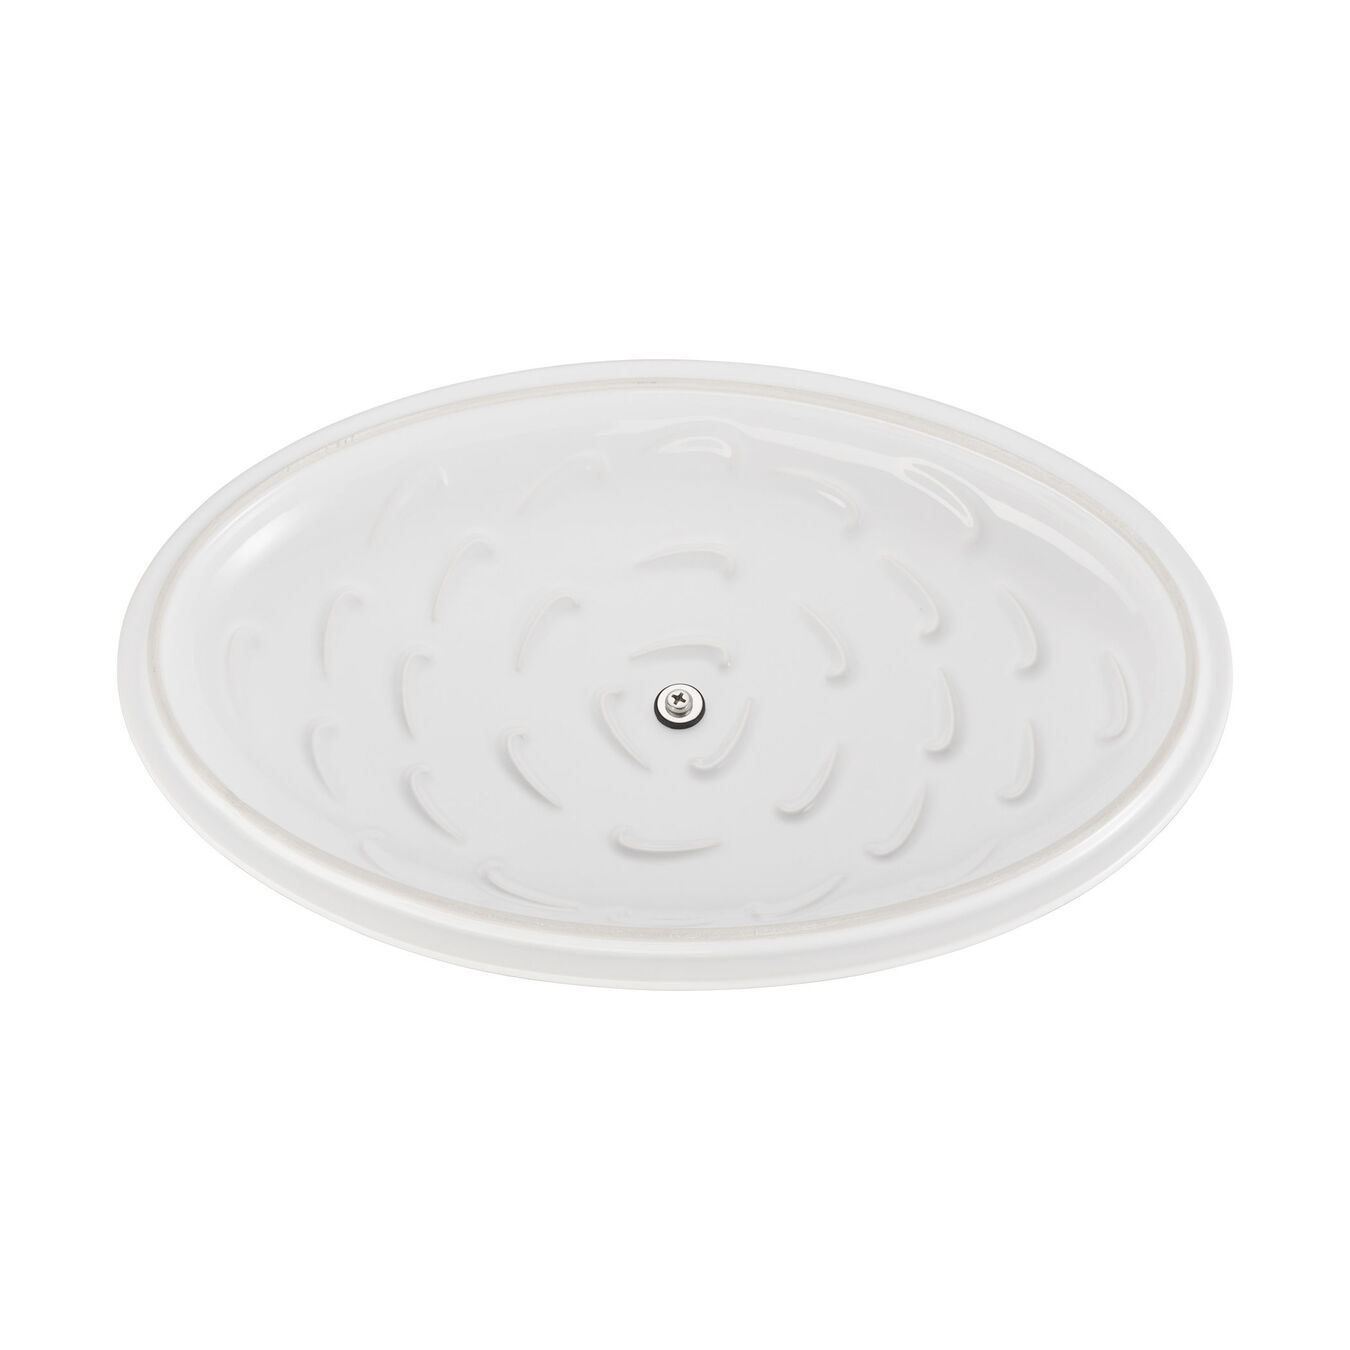 14-inch Oval Covered Baking Dish - White,,large 5